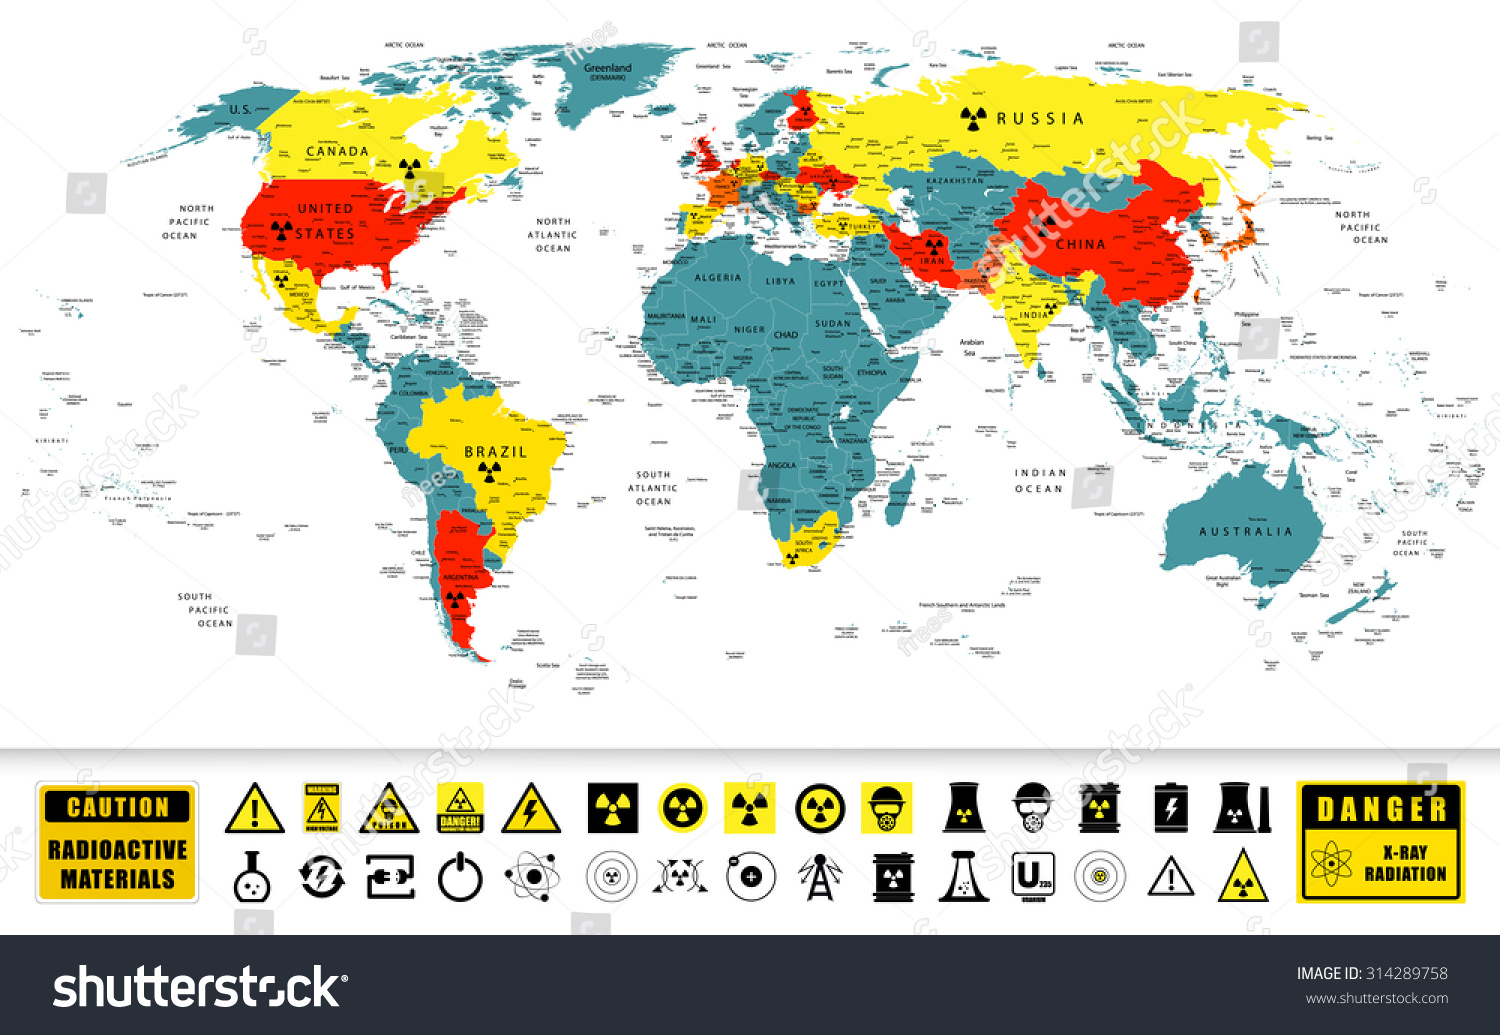 World Map Nuclear Power Countries Location Stock-Vrgrafik ... on